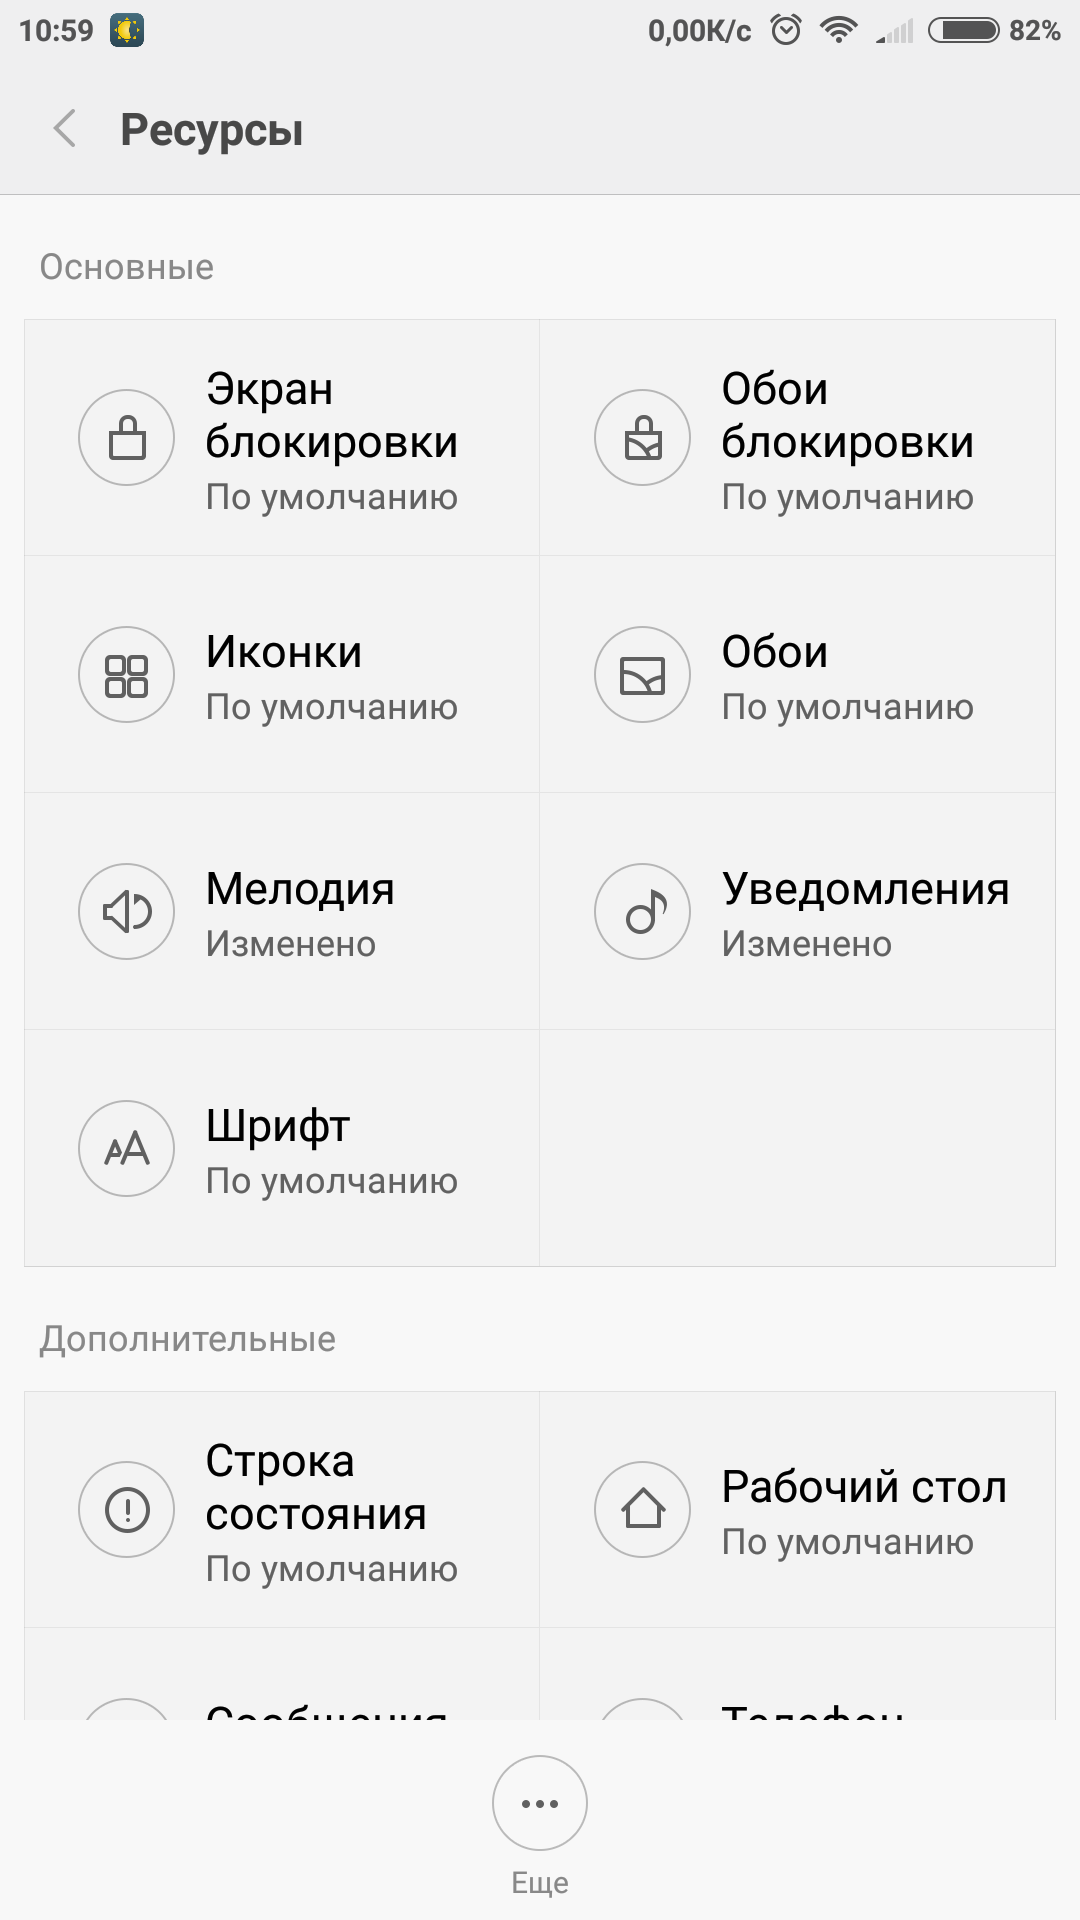 Screenshot_2016-02-13-10-59-14_com.android.thememanager.png